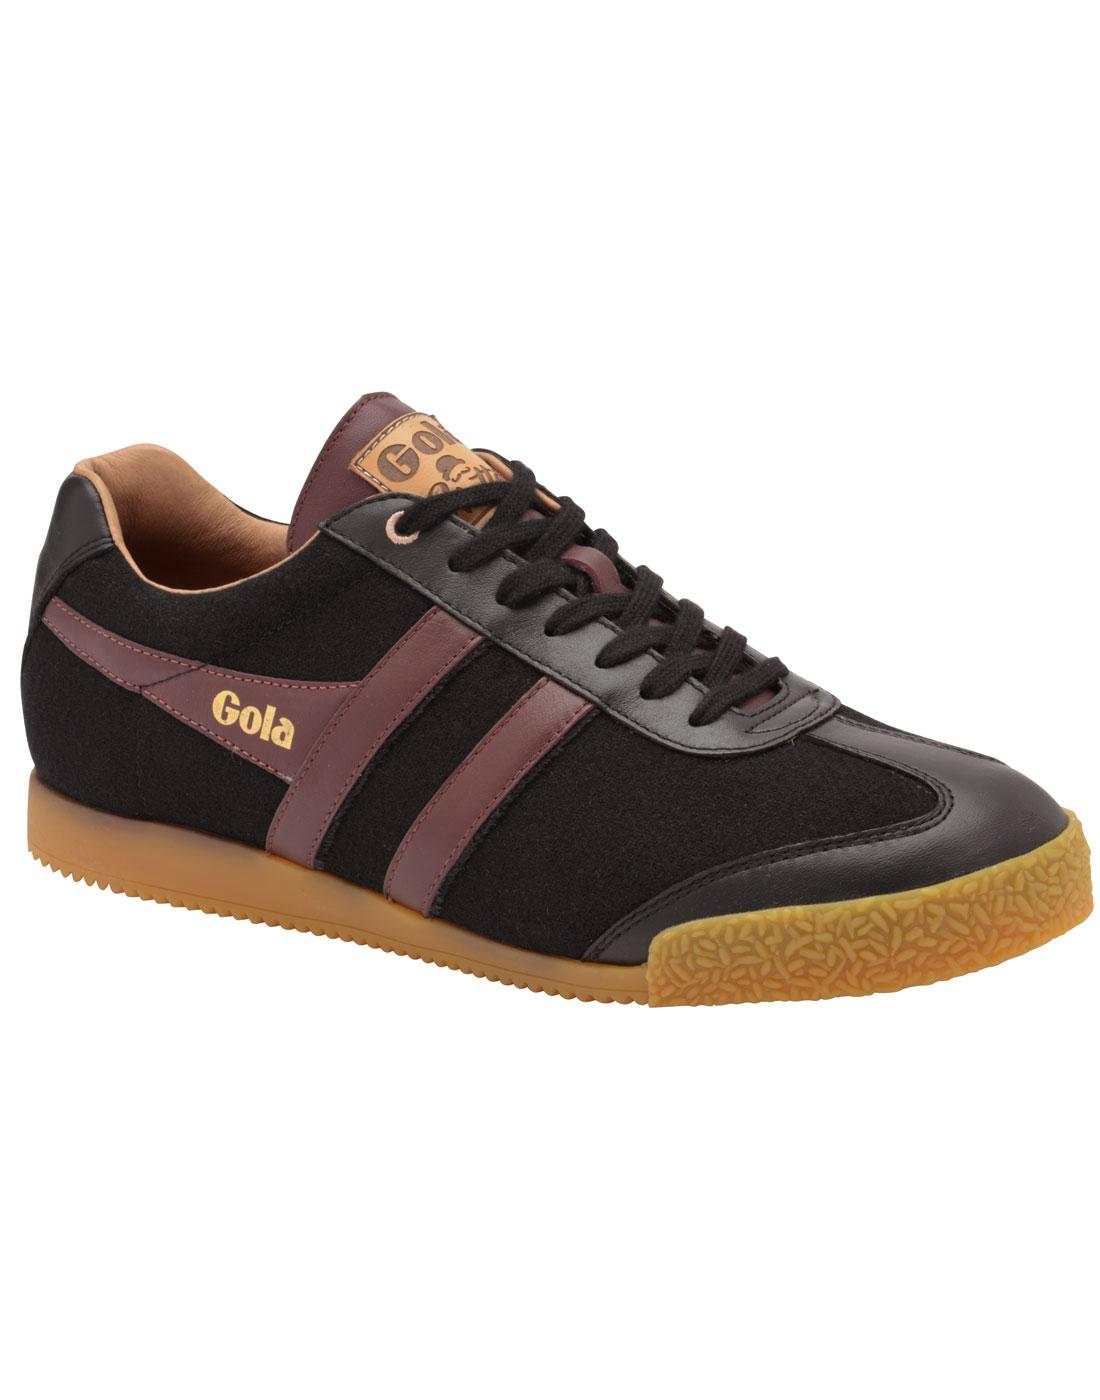 Harrier Hatters Bowler GOLA Retro 1970s Trainers